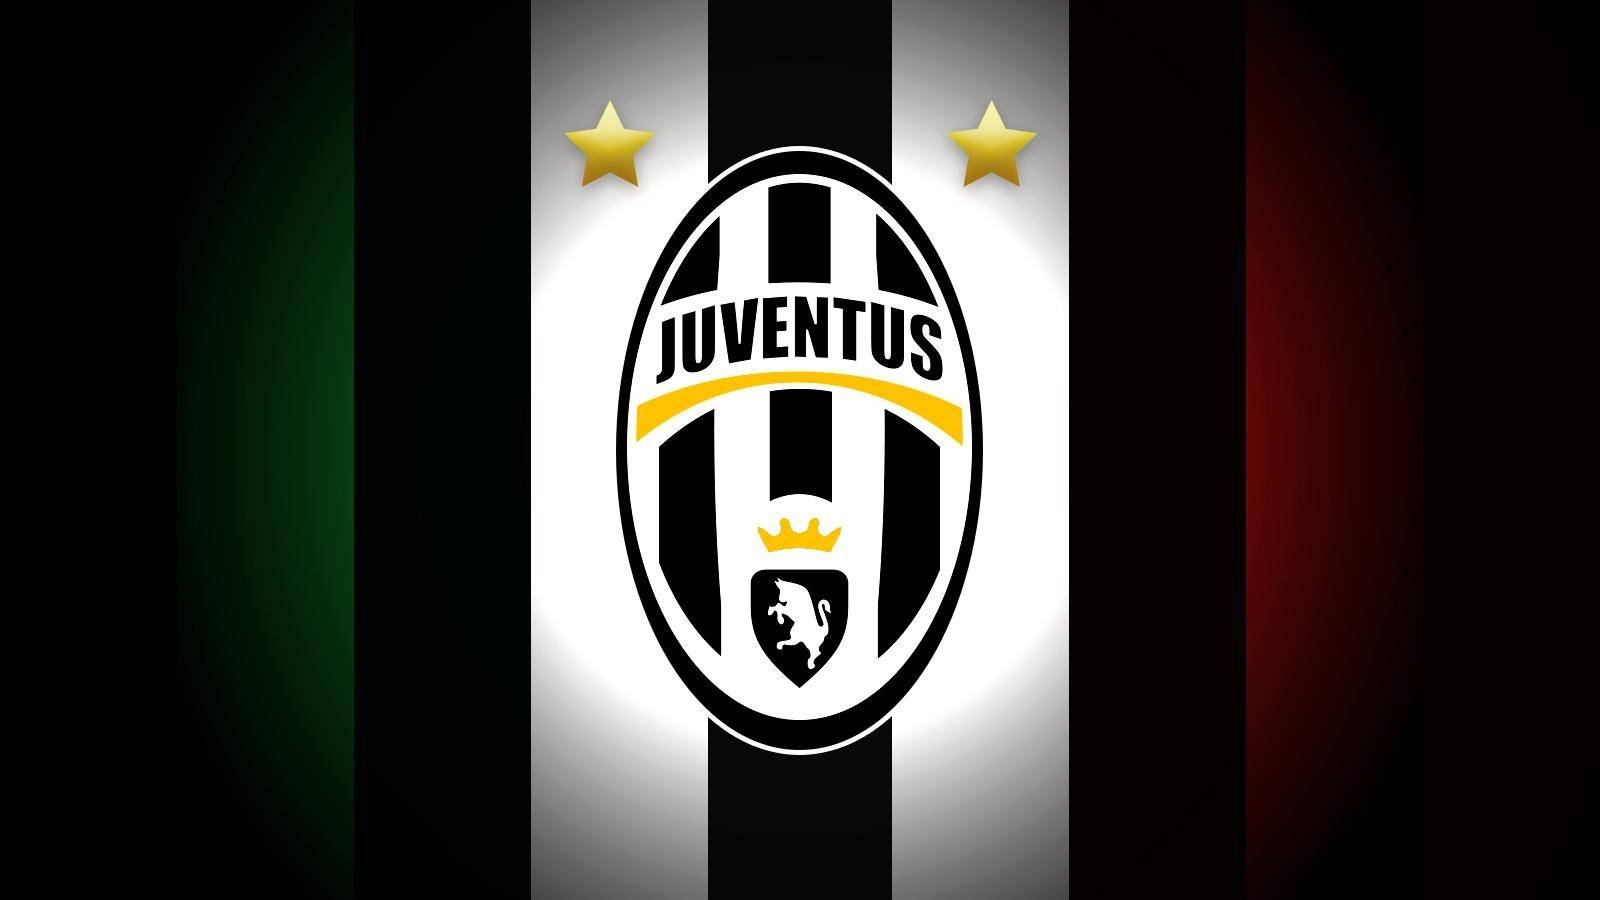 Wallpaper, Juventus Wallpaper Hd Free Android Application ...